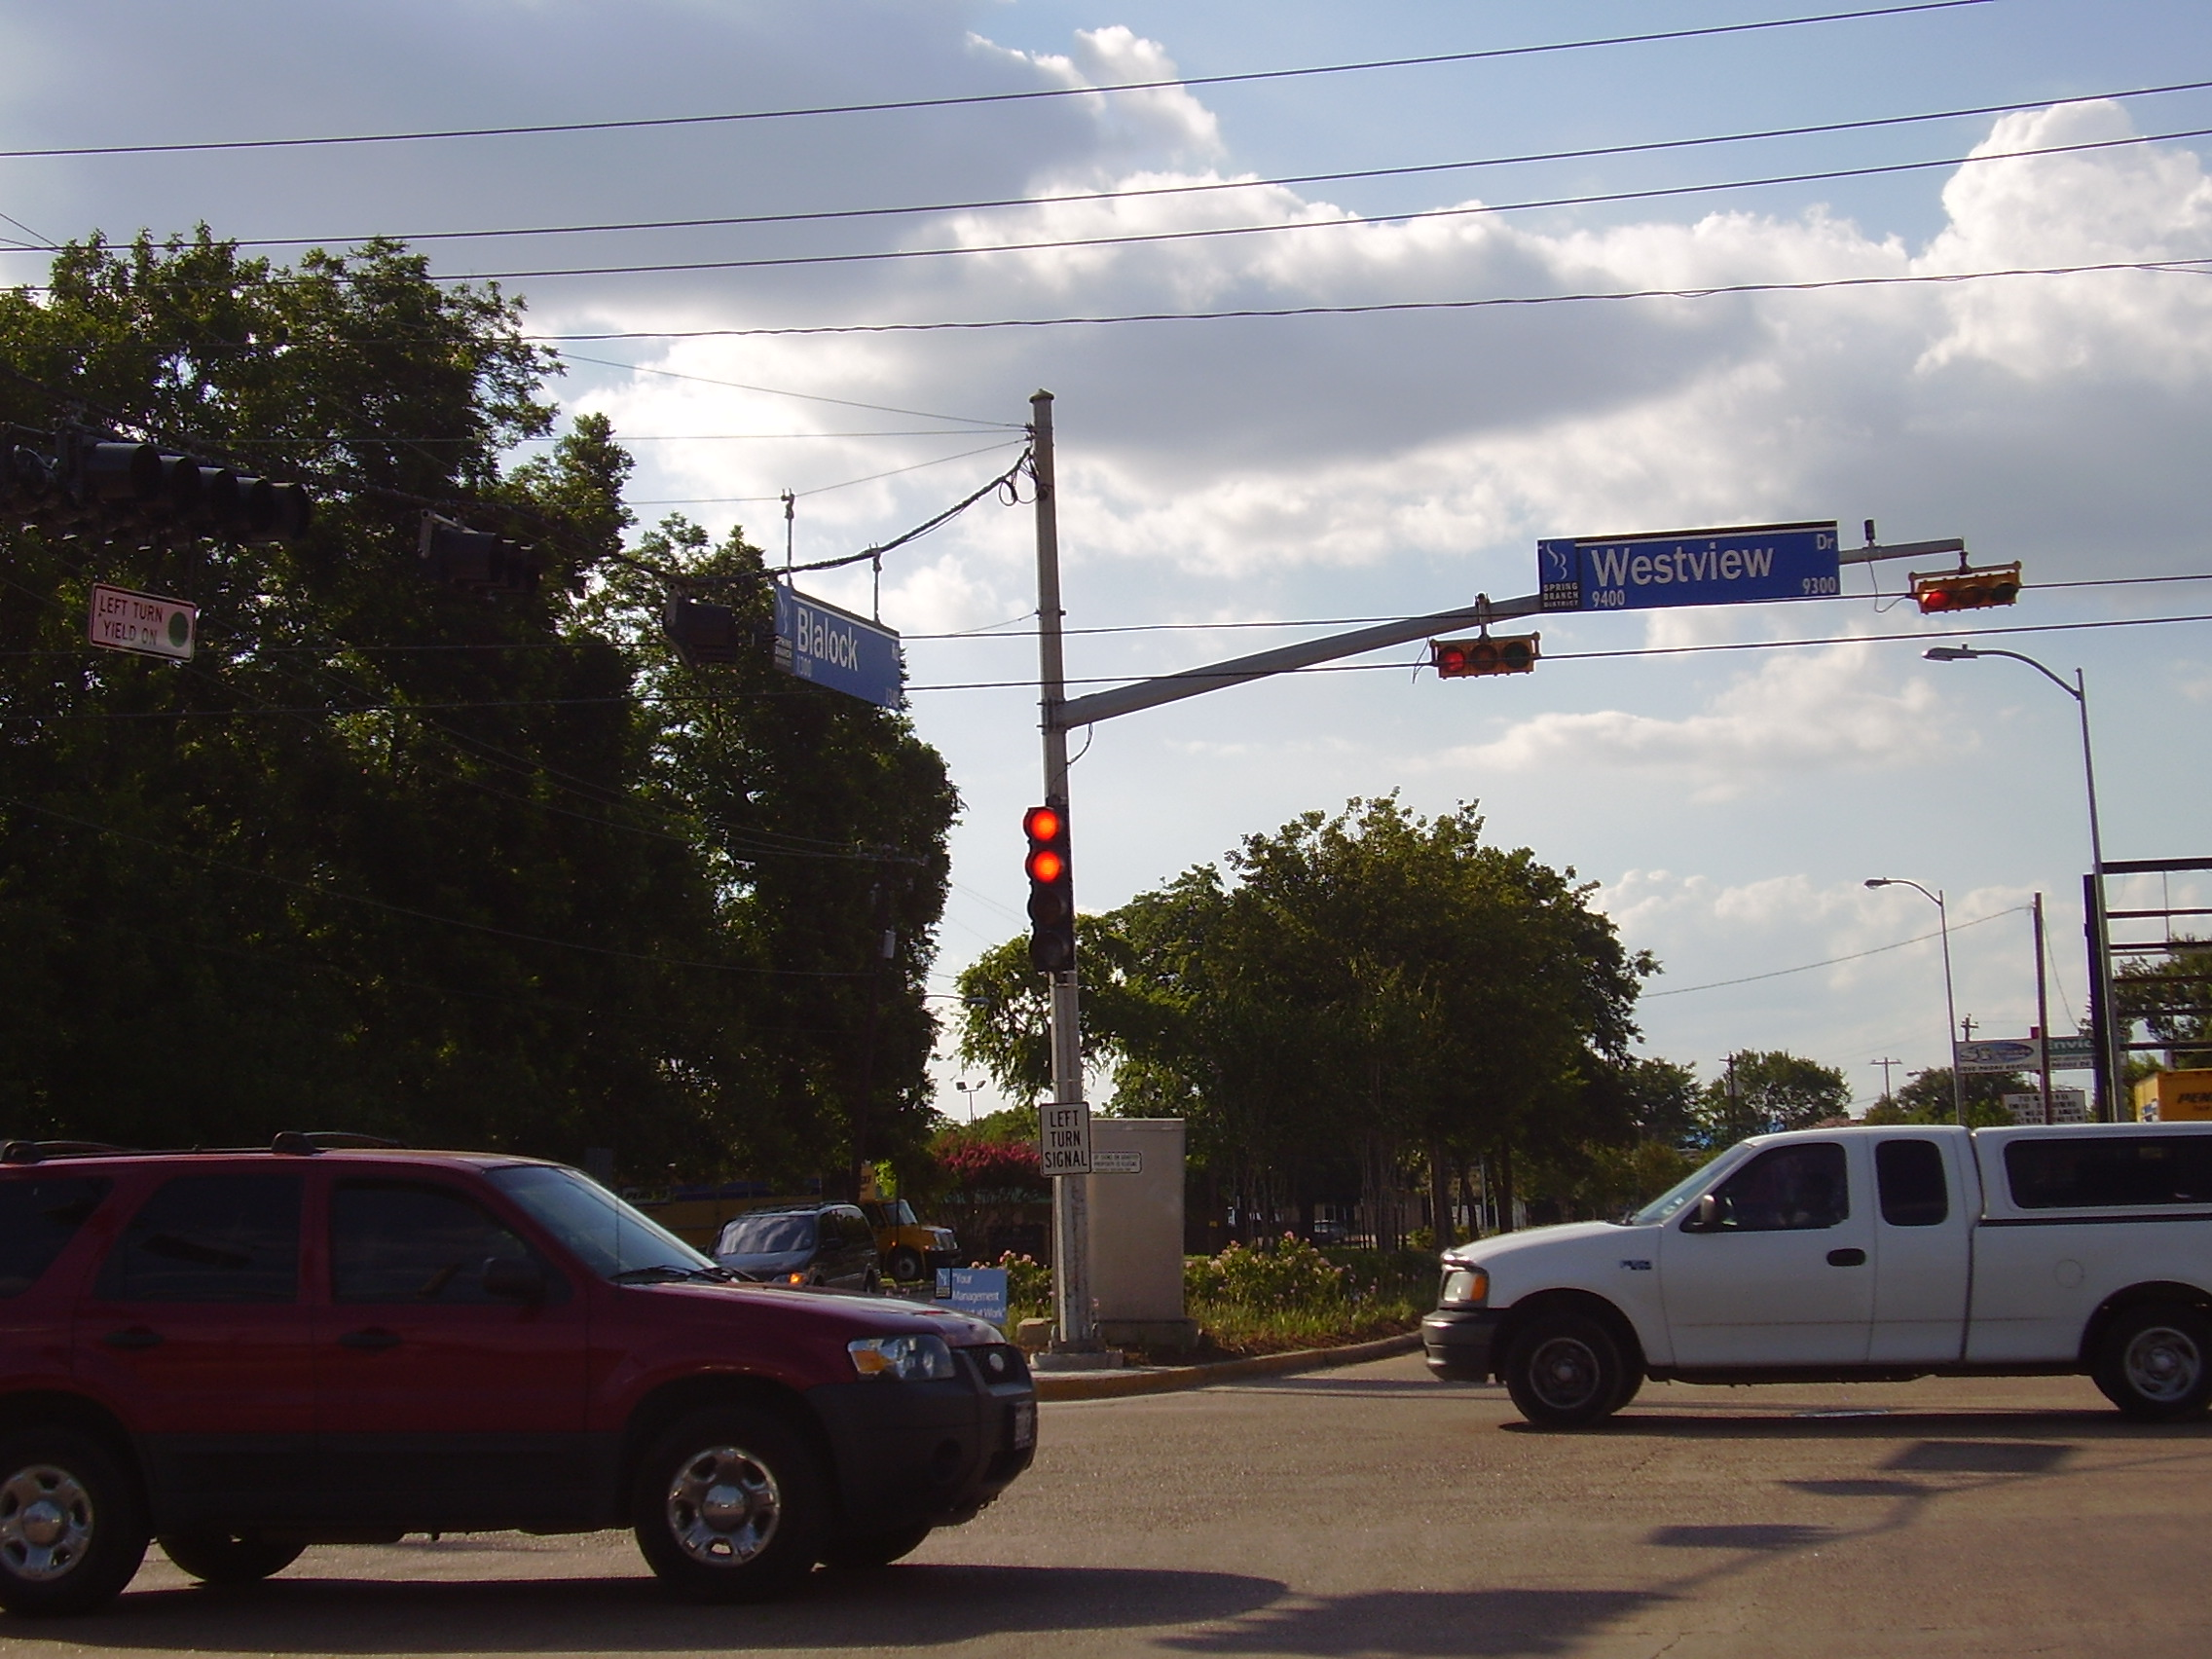 springbranchintersection.jpg